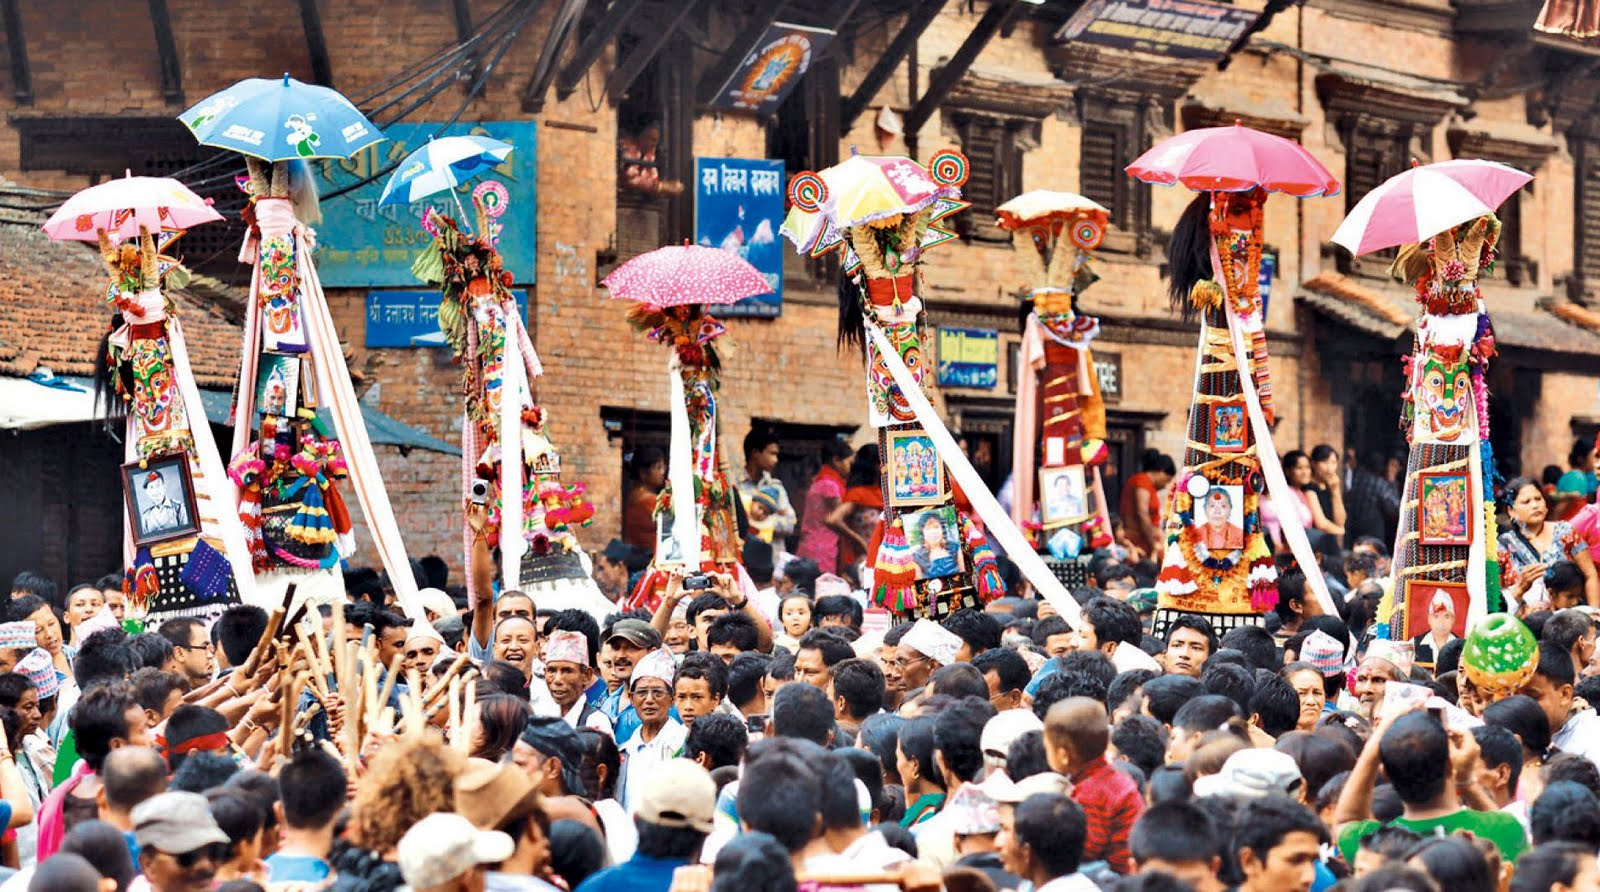 Gai jatra, the festival of death, dance and satiric street performances image